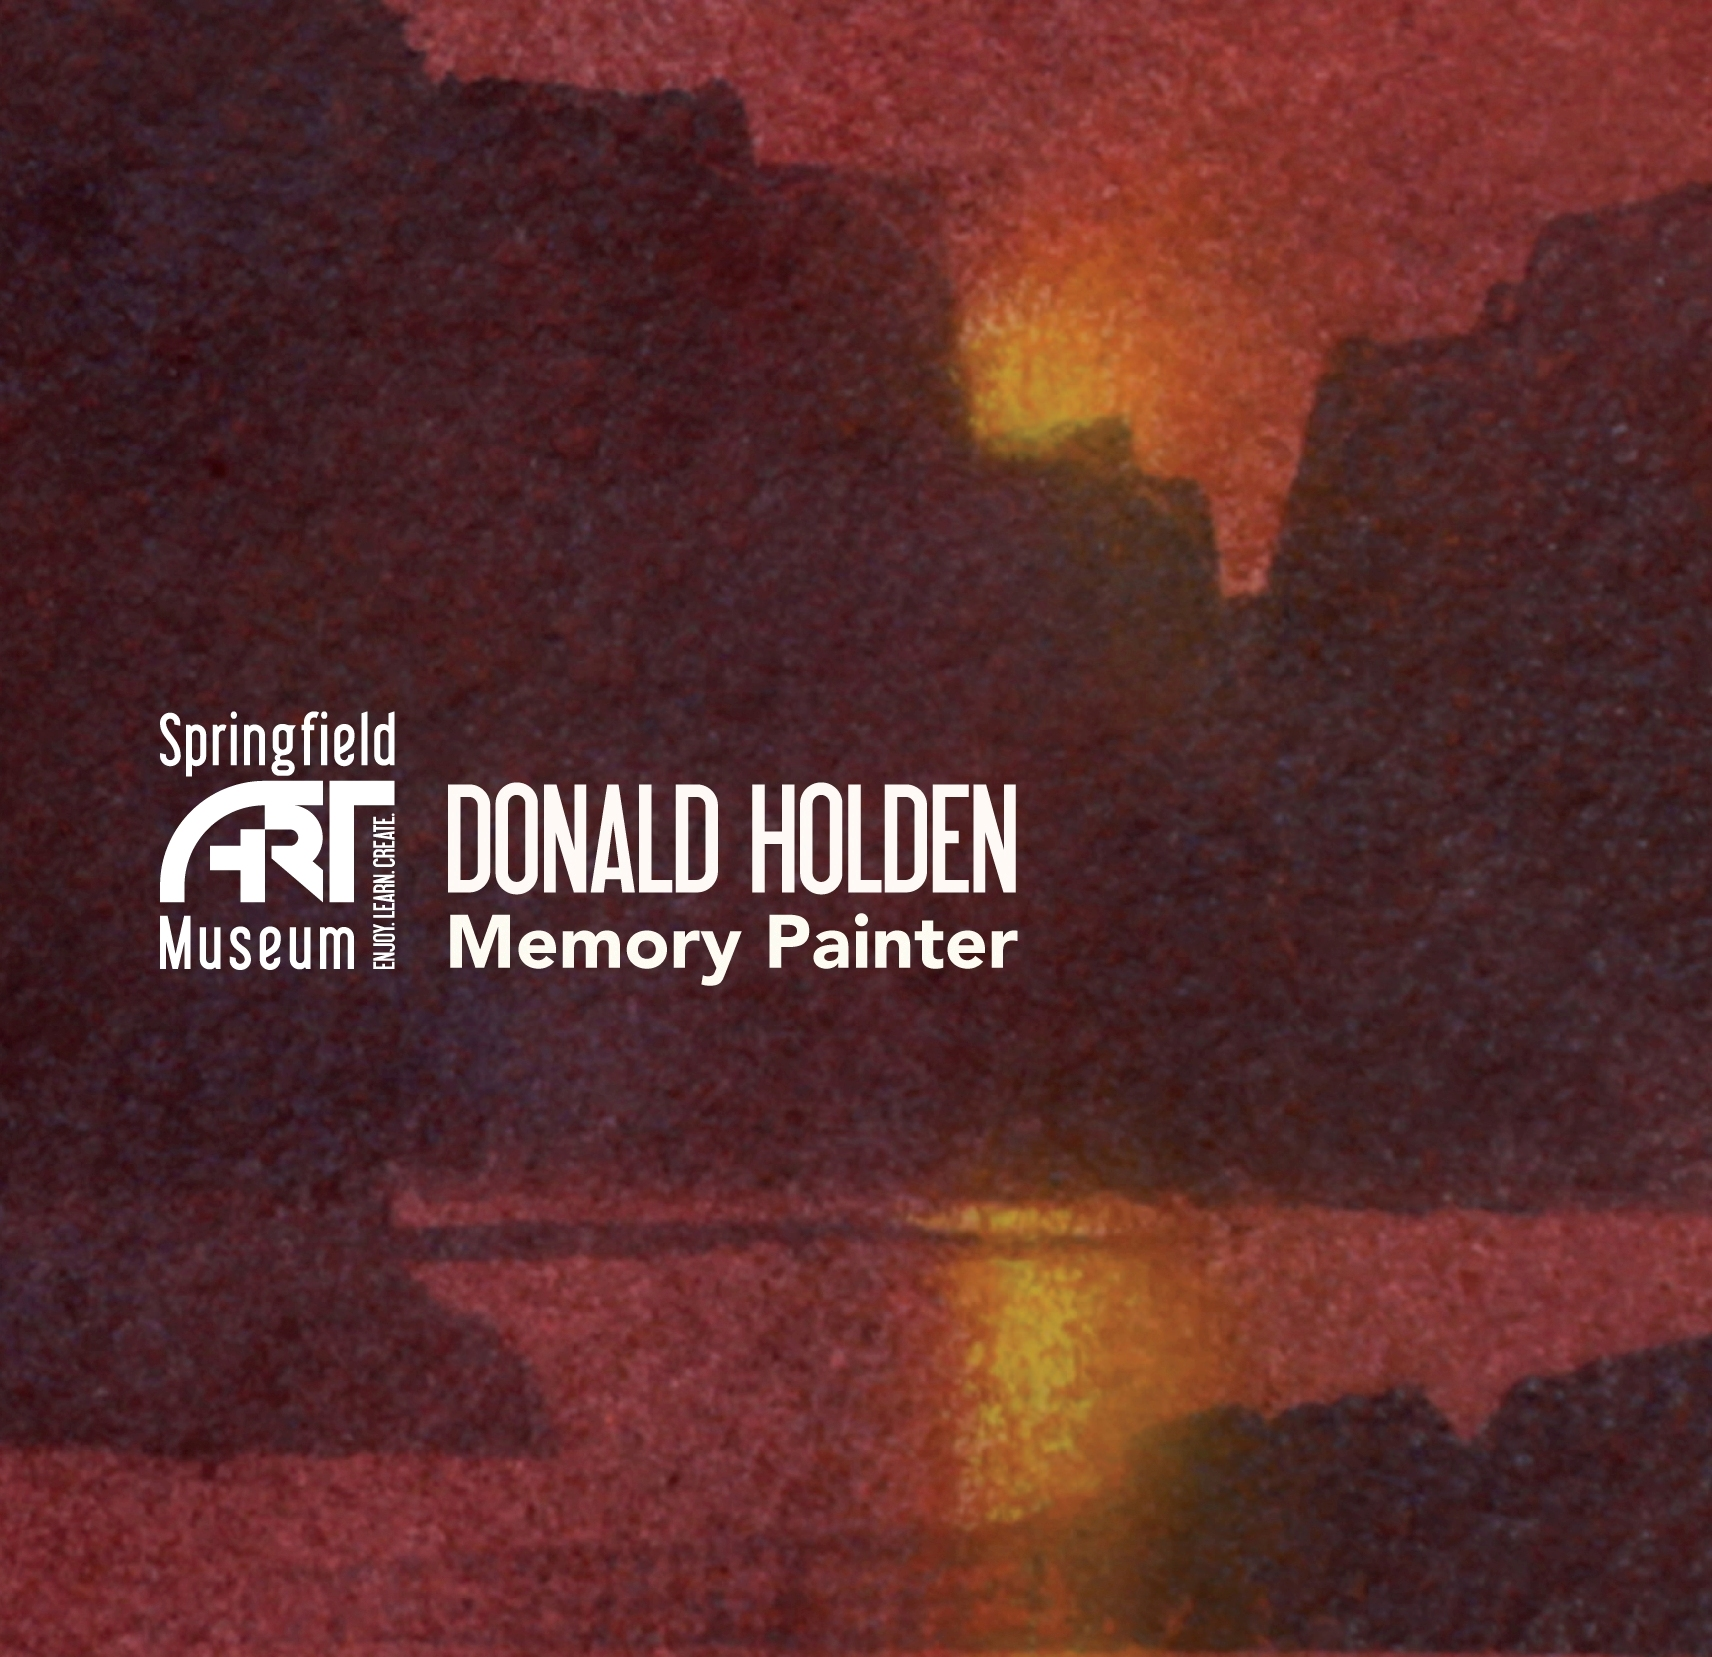 Donald Holden Exhibition Guide-1 - Copy.jpg